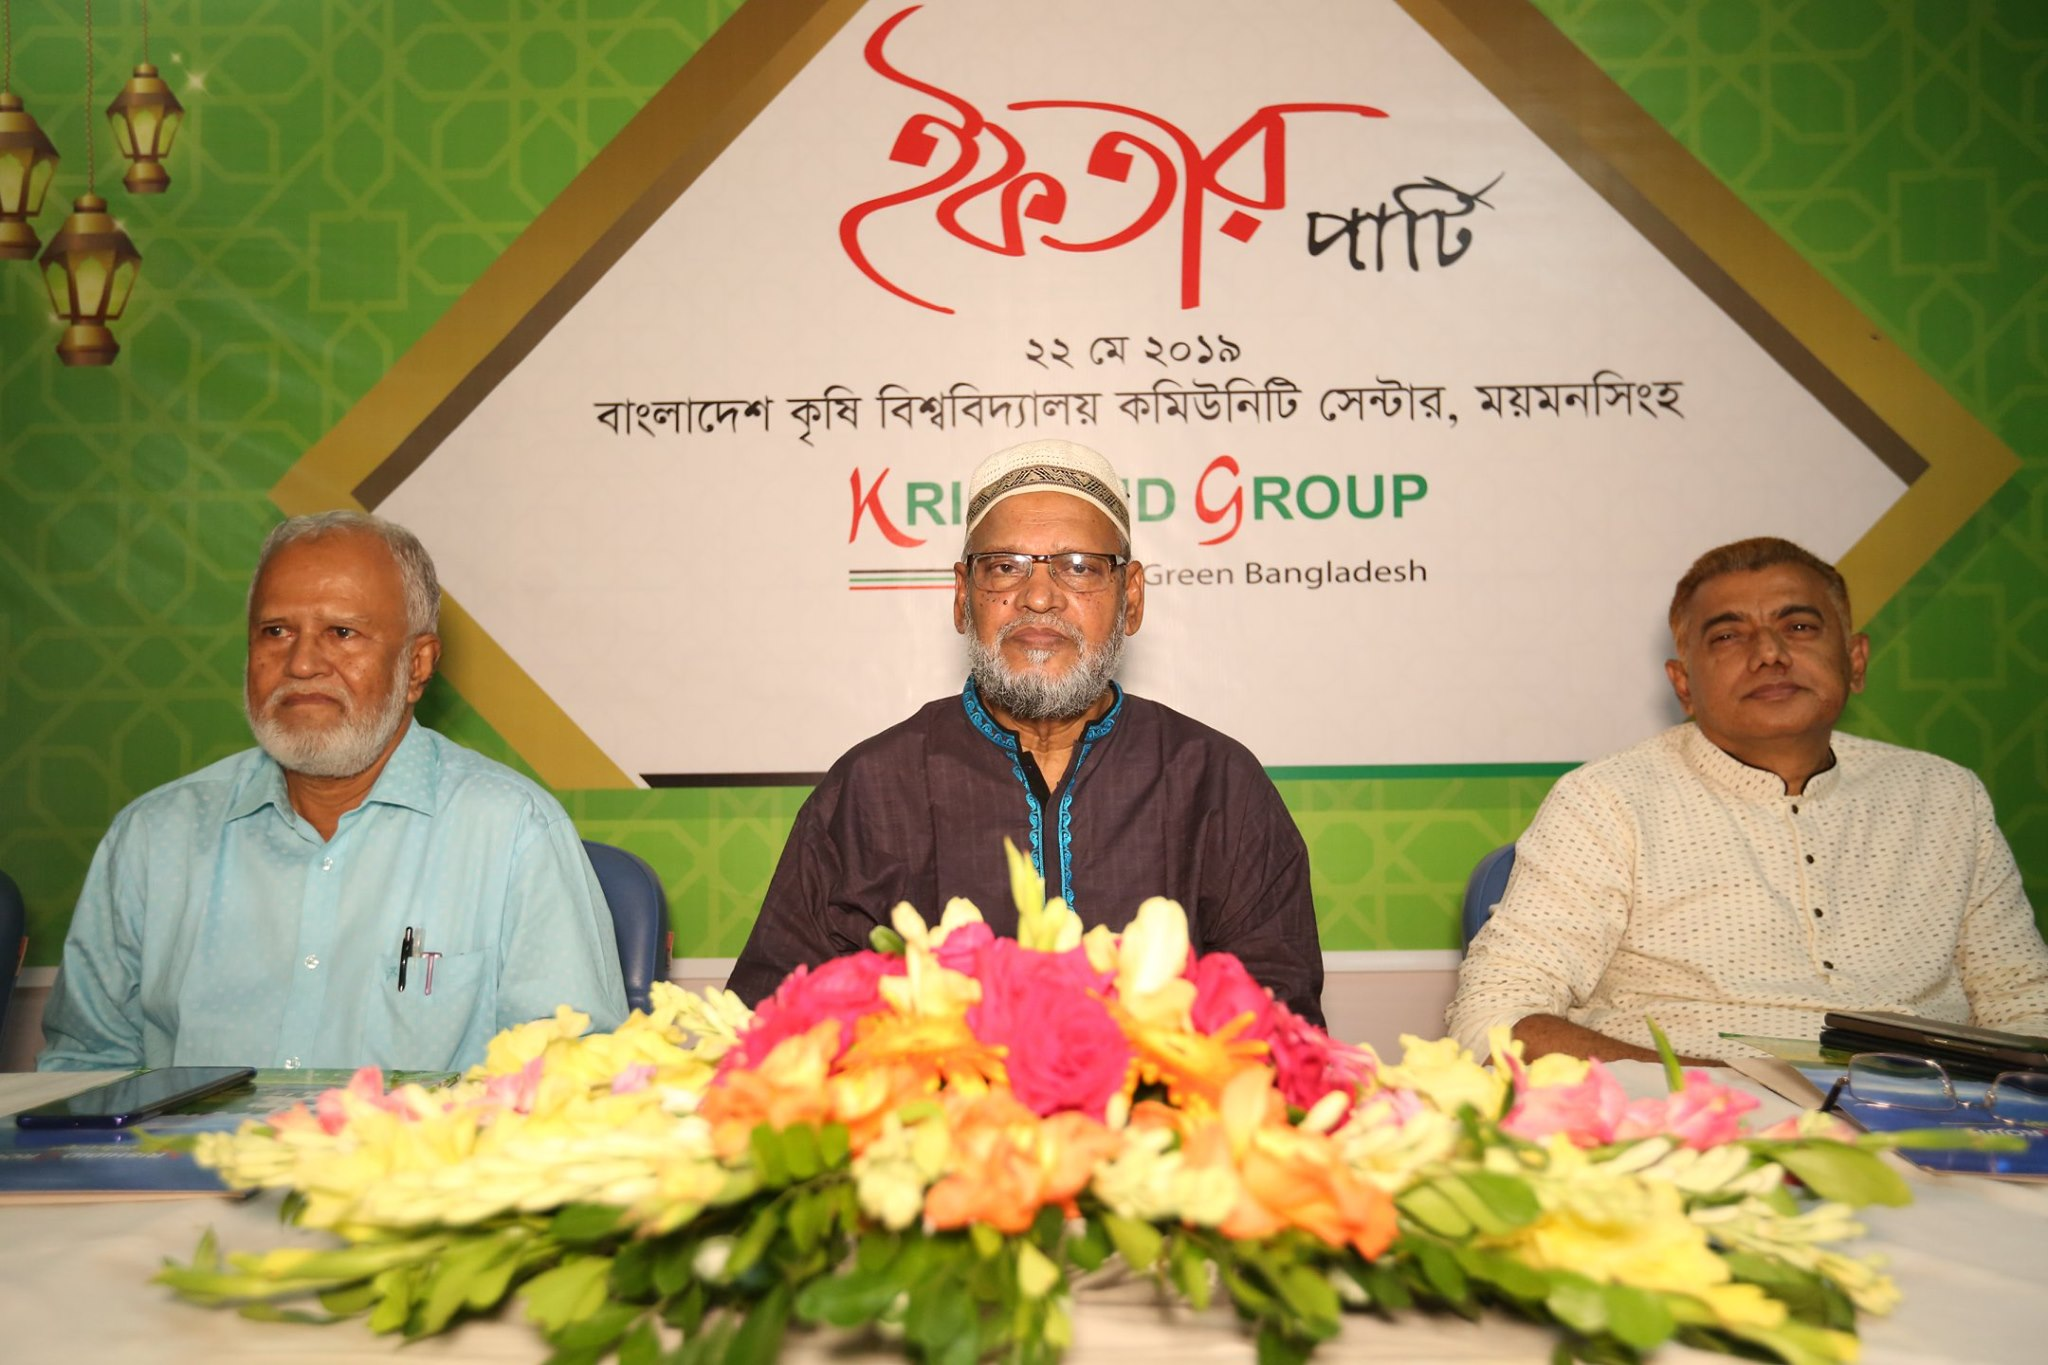 Meritorious Reputation and Iftar Party of Krishibid Group at Bangladesh Agricultural University (BAU), Mymensingh